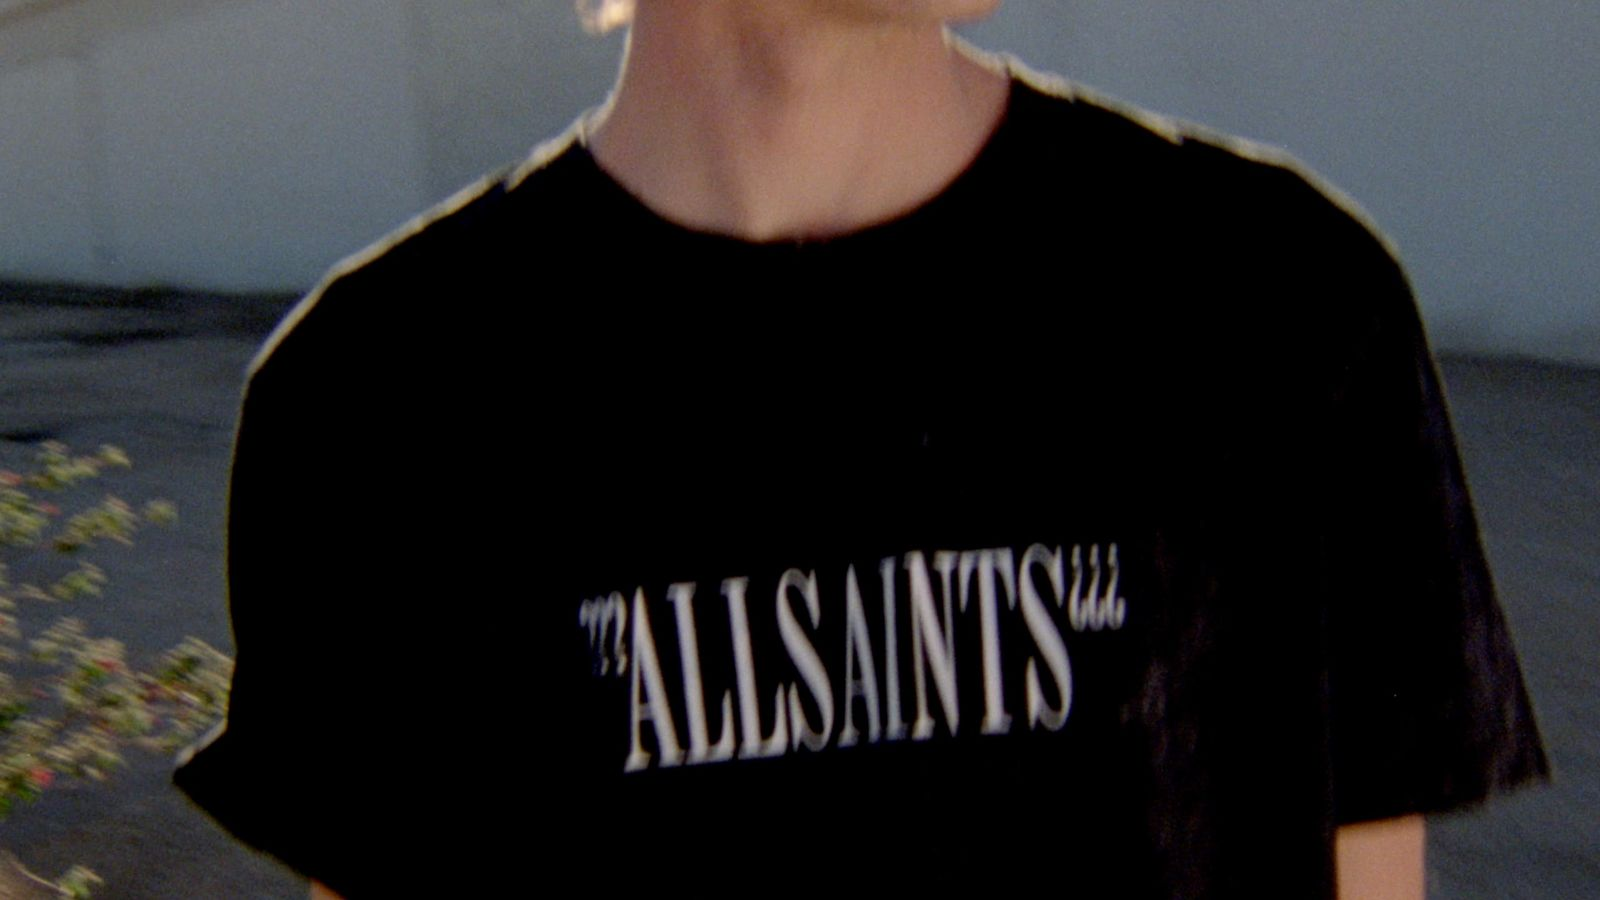 Mini-clip screenshot of a man wearing a black t-shirt with a white logo accross the chest from out latest collection.